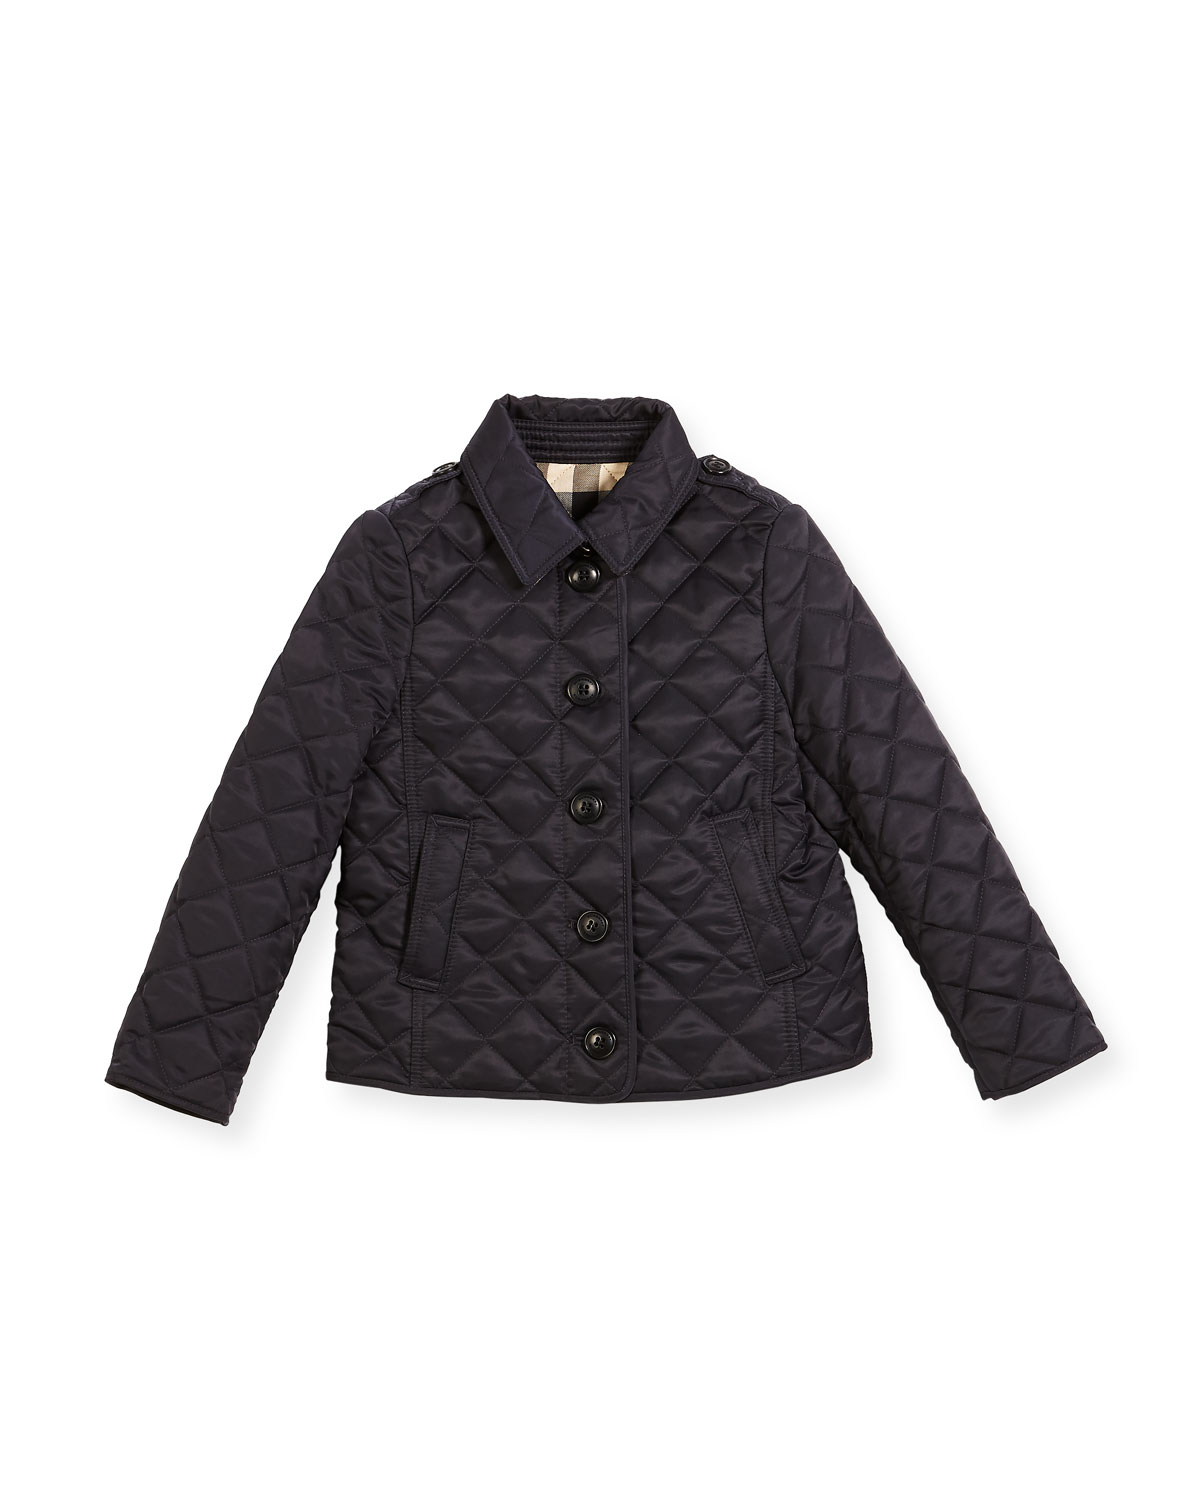 Burberry Ashurst Quilted Button Front Jacket Navy Size 4